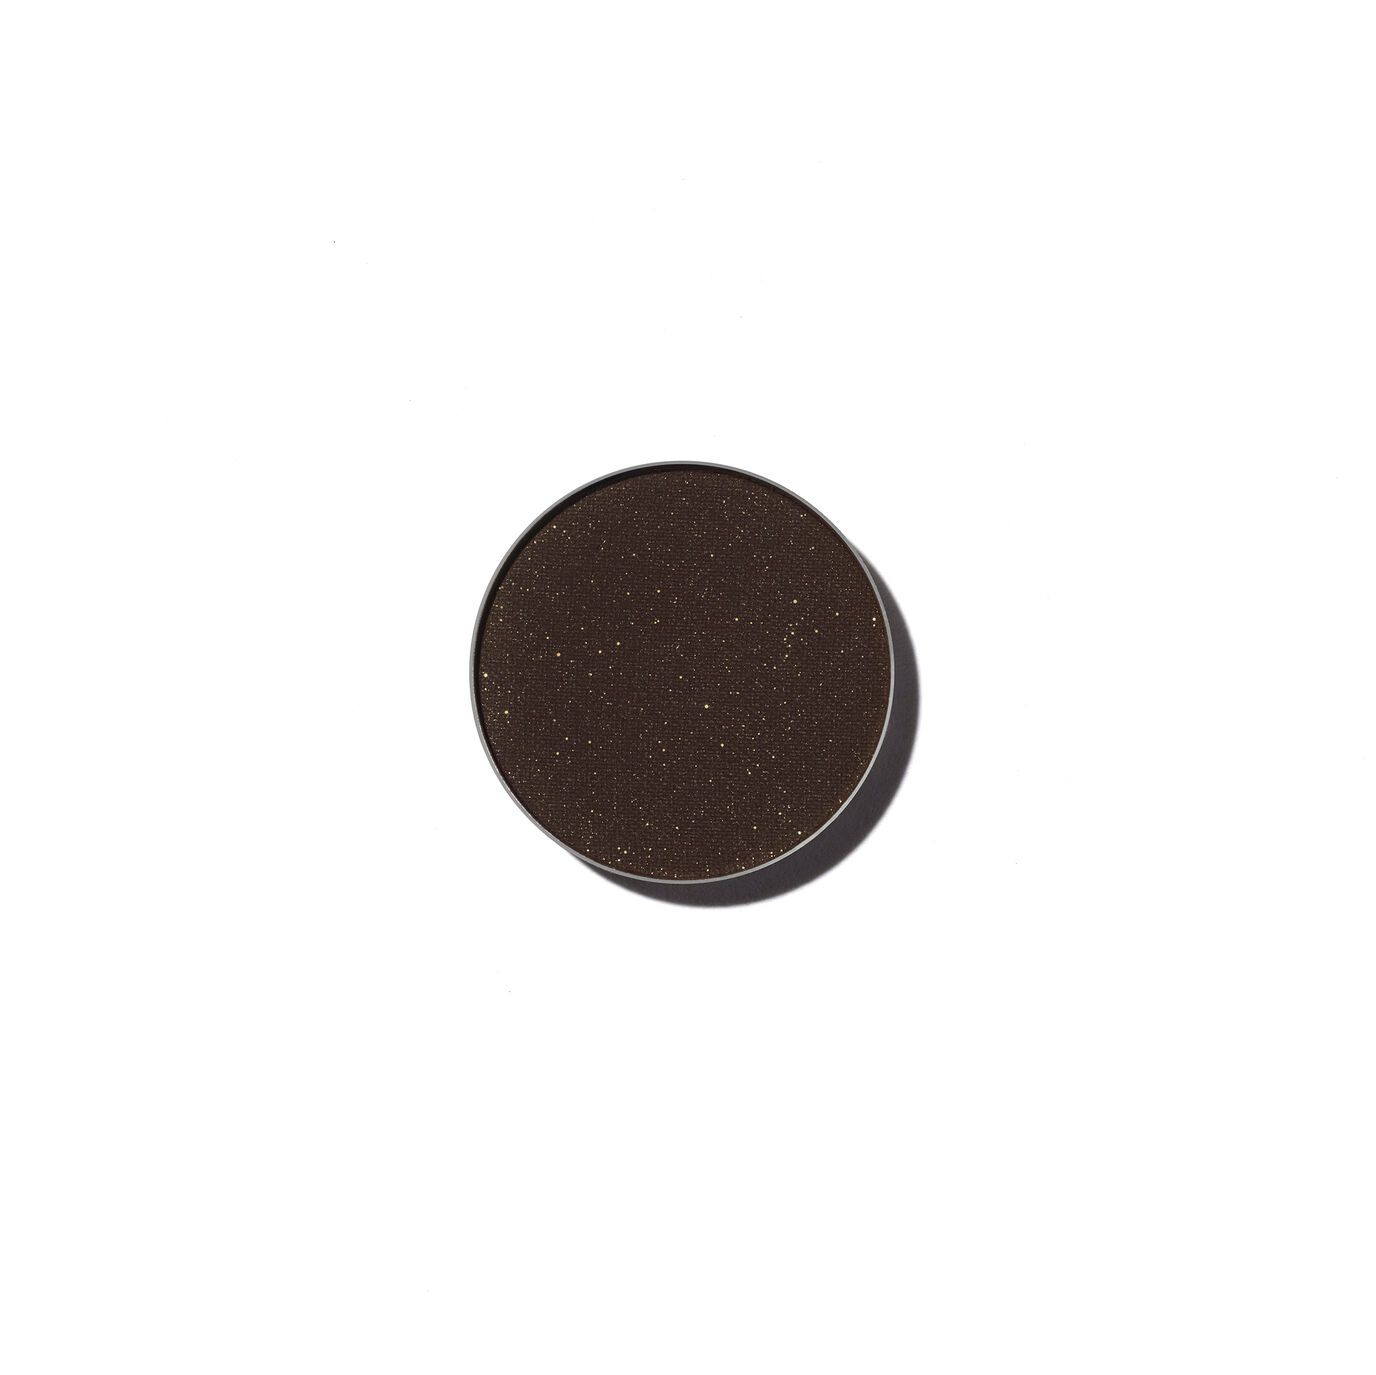 Eyeshadow Singles - Dark Chocolate Shimmer